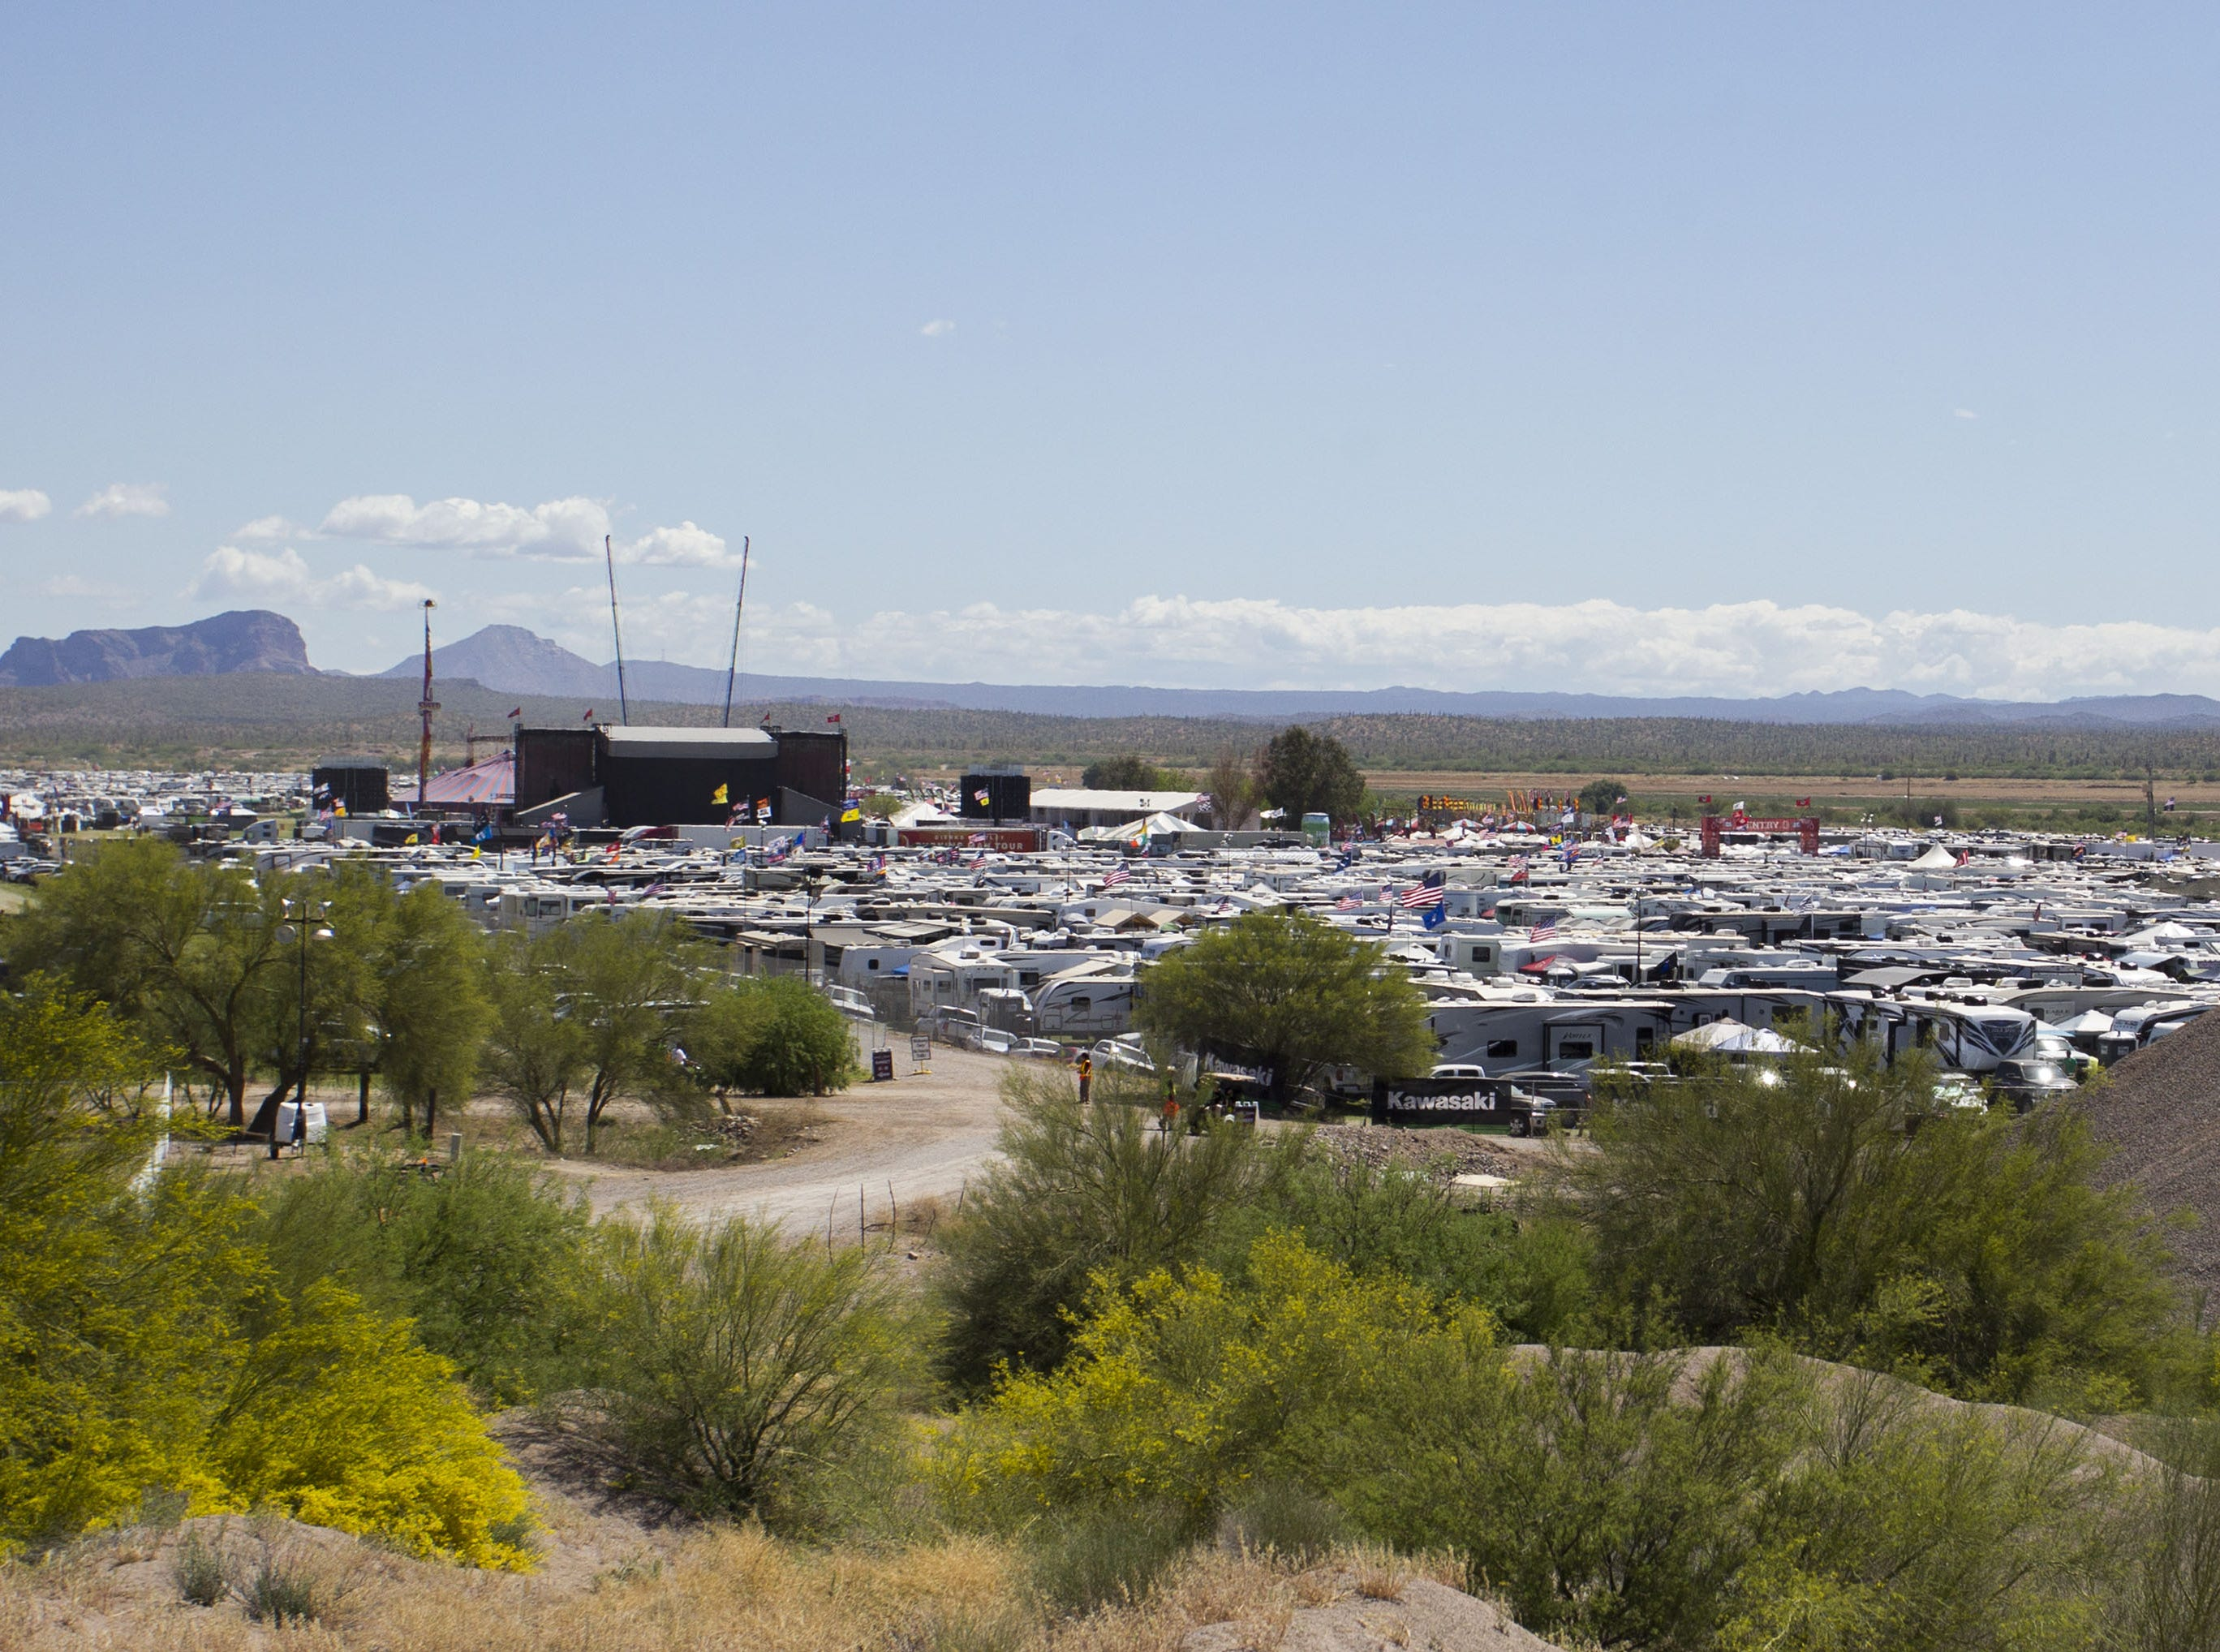 Camp grounds dot the landscape during Country Thunder Arizona Friday, April 13, 2019, in Florence, Ariz.